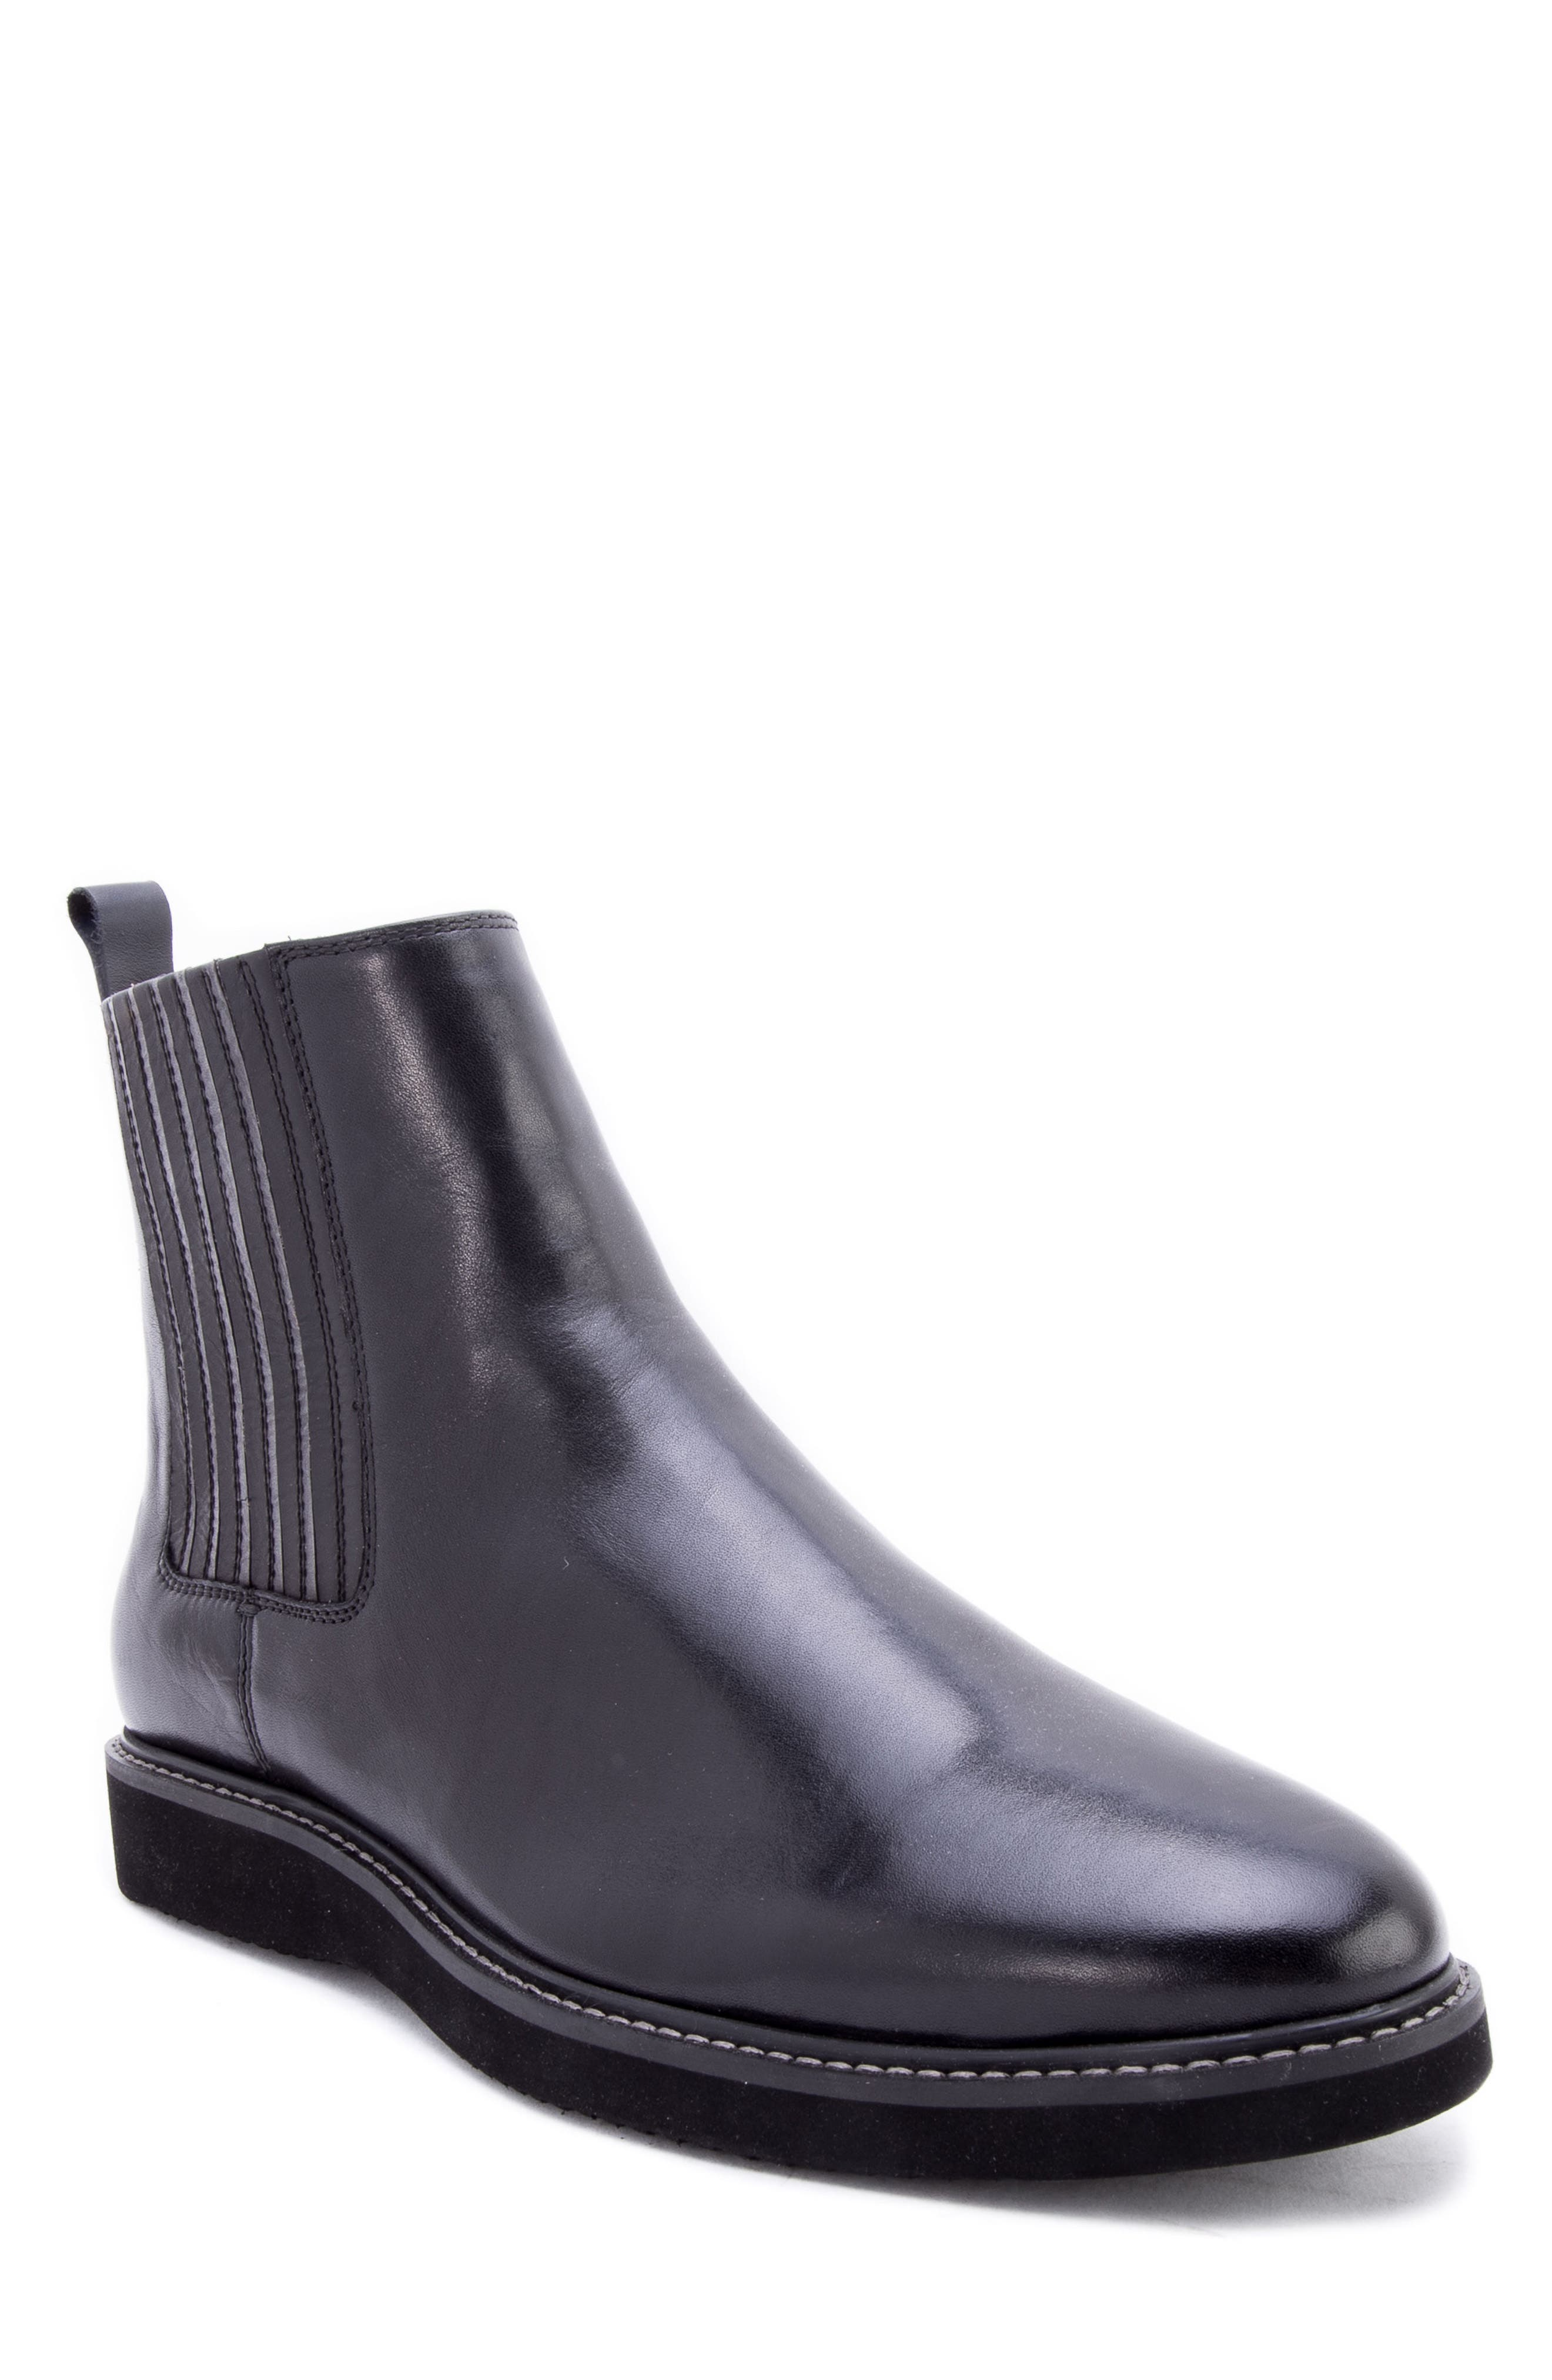 Warlow Chelsea Boot,                         Main,                         color, BLACK LEATHER